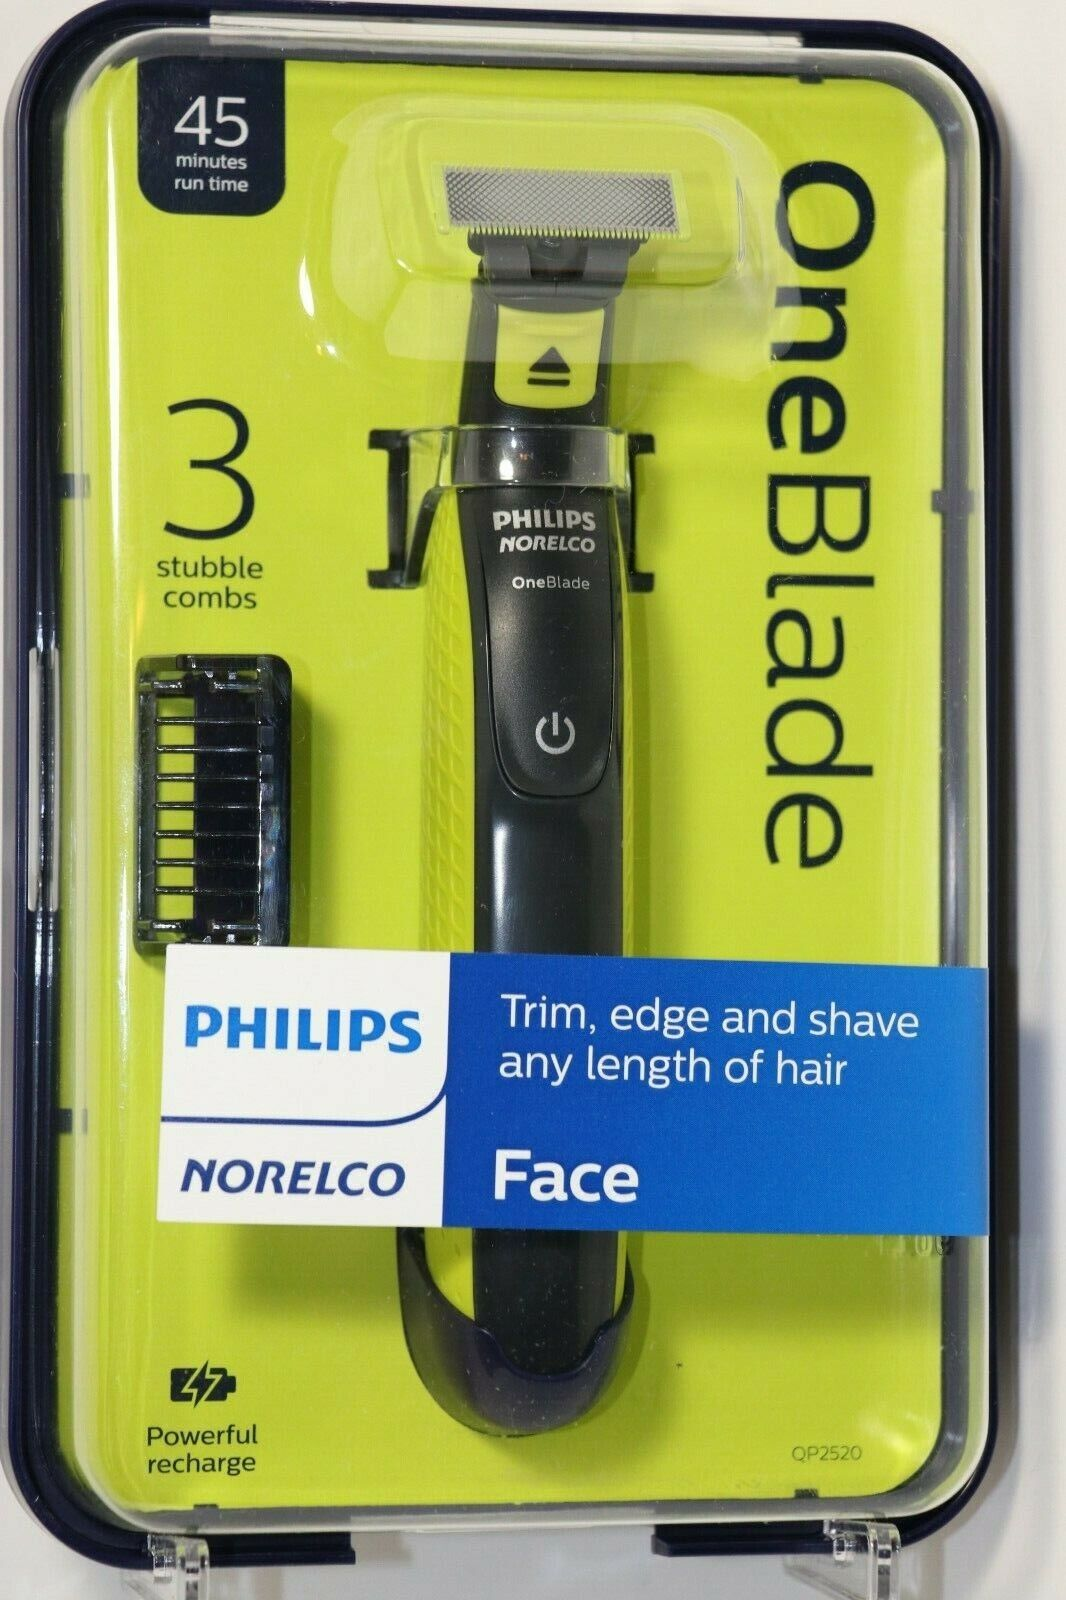 Philips Norelco Oneblade ONE BLADE Hybrid Electric Trimmer S